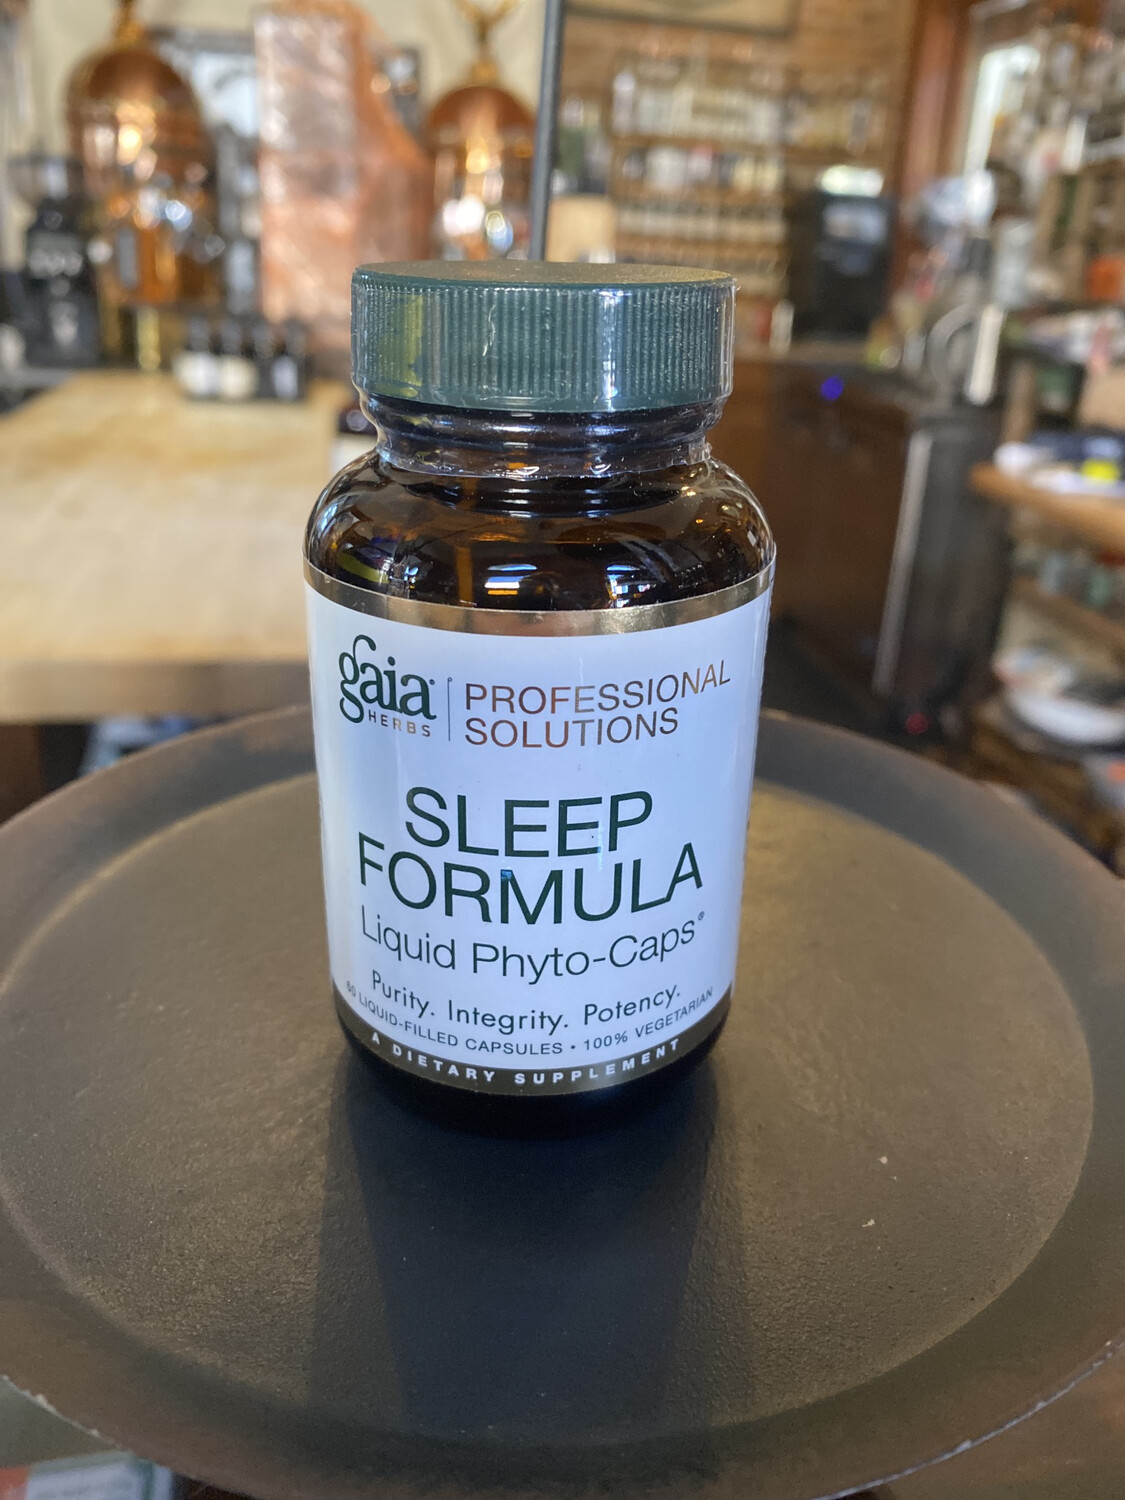 Sleep Formula From Gaia Professional